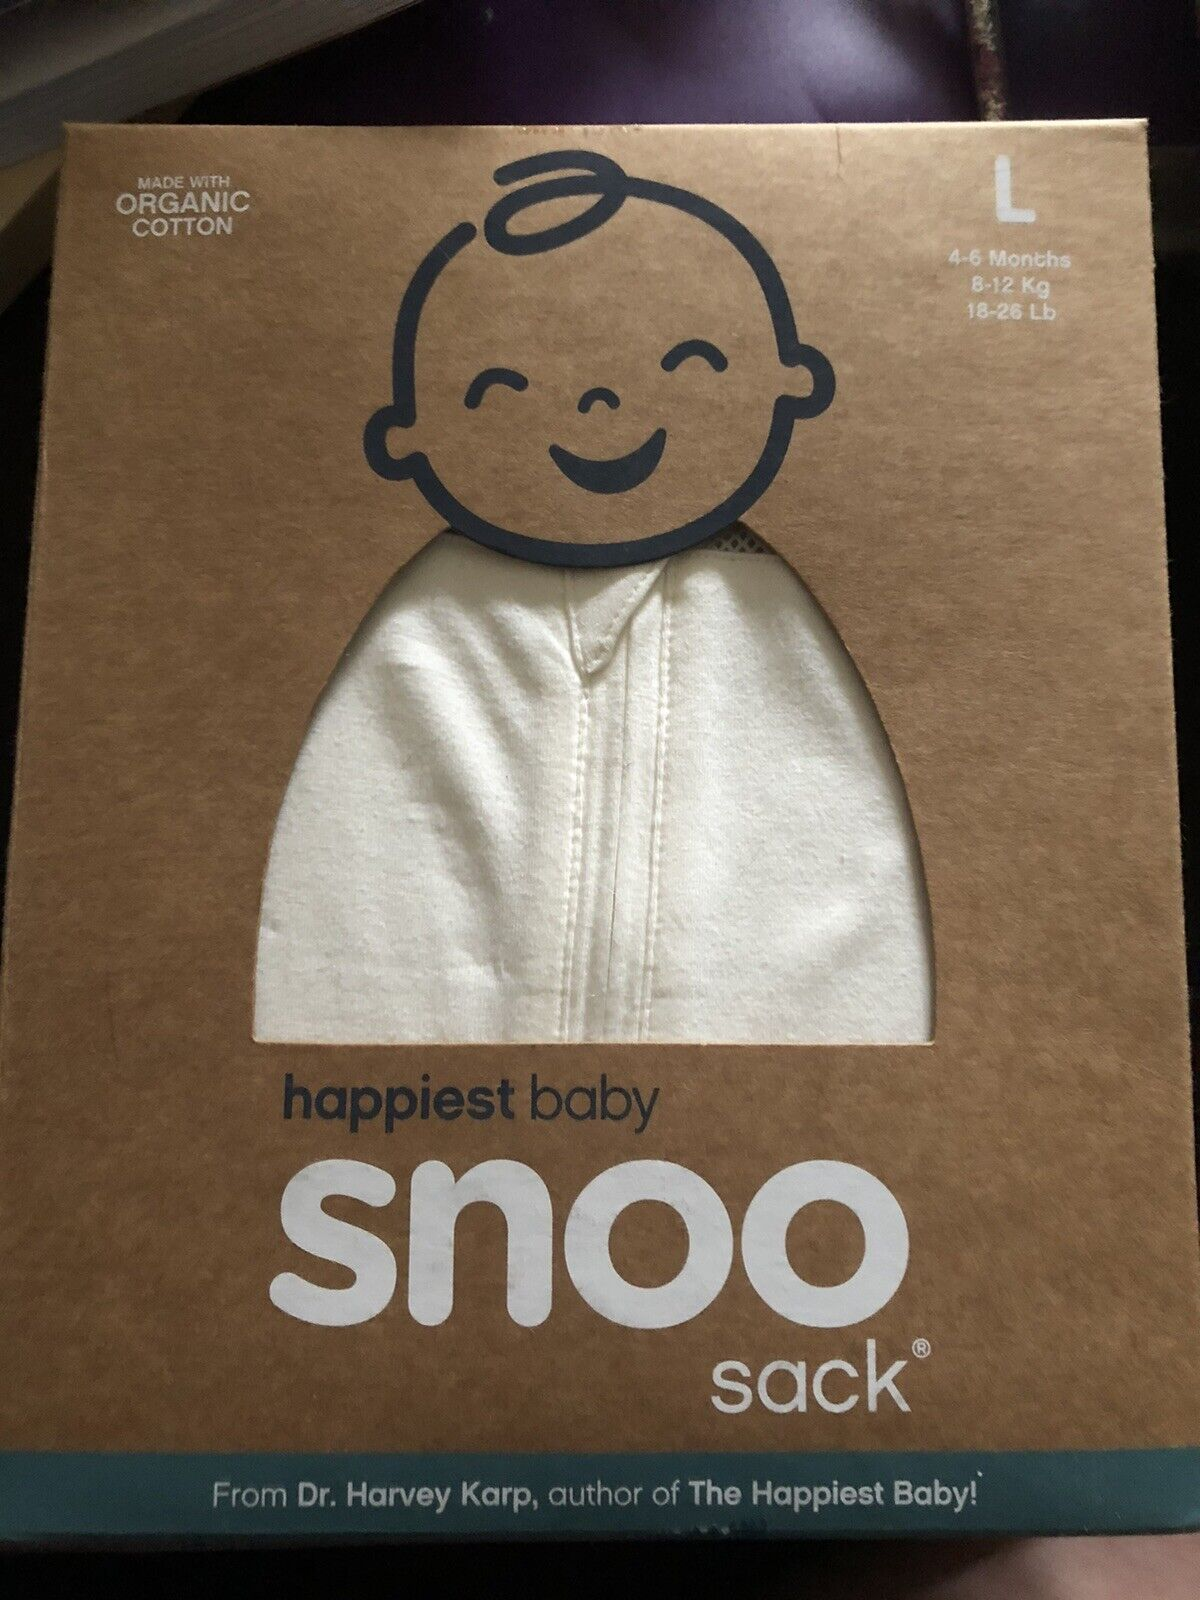 NEW - SNOO Sleep Sack Swaddle Organic Cotton Happiest Baby, size L 4-6 months